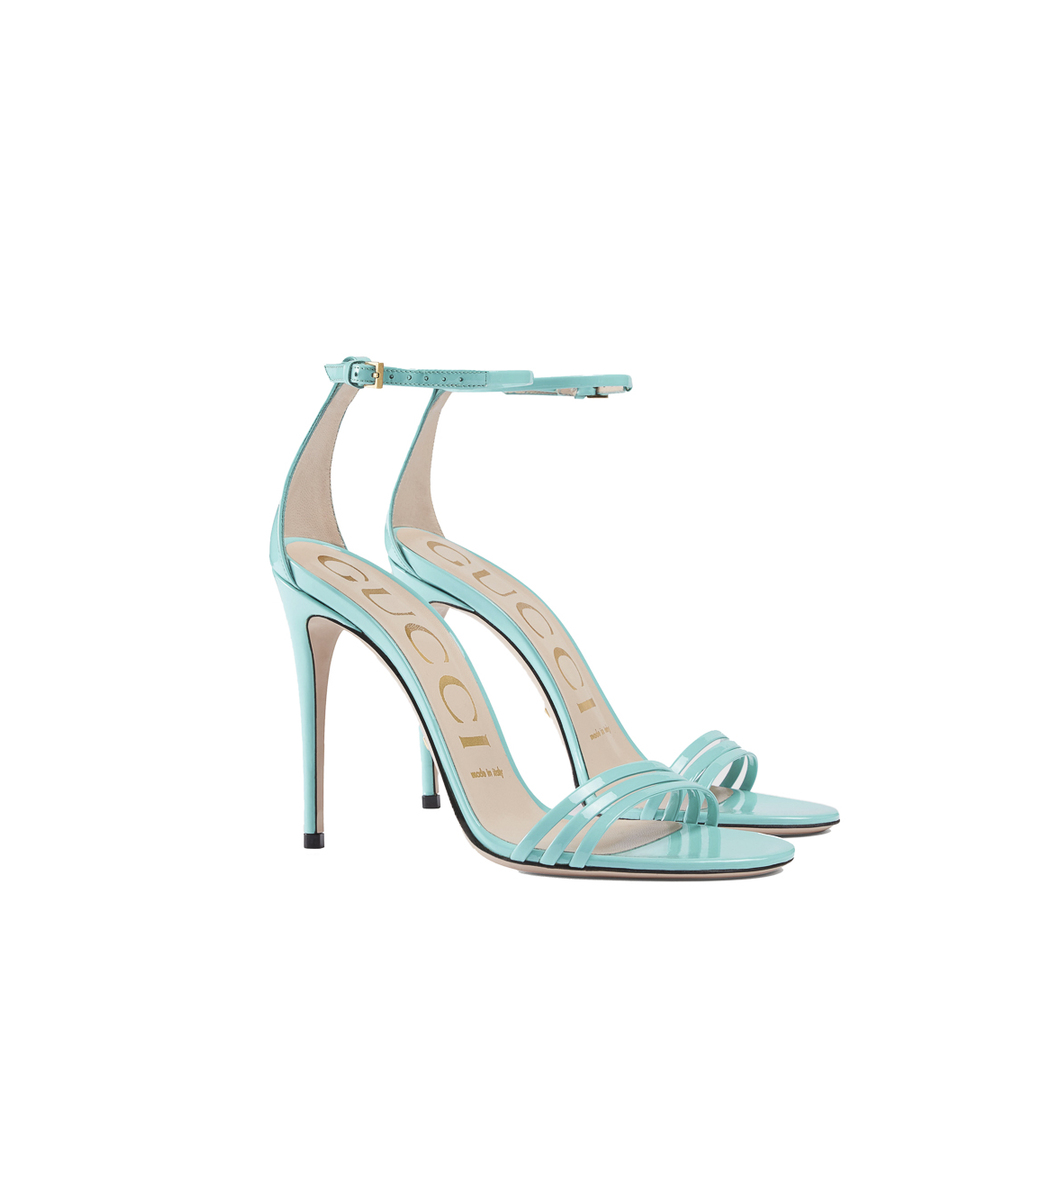 GUCCI Turquoise Patent Leather Sandal